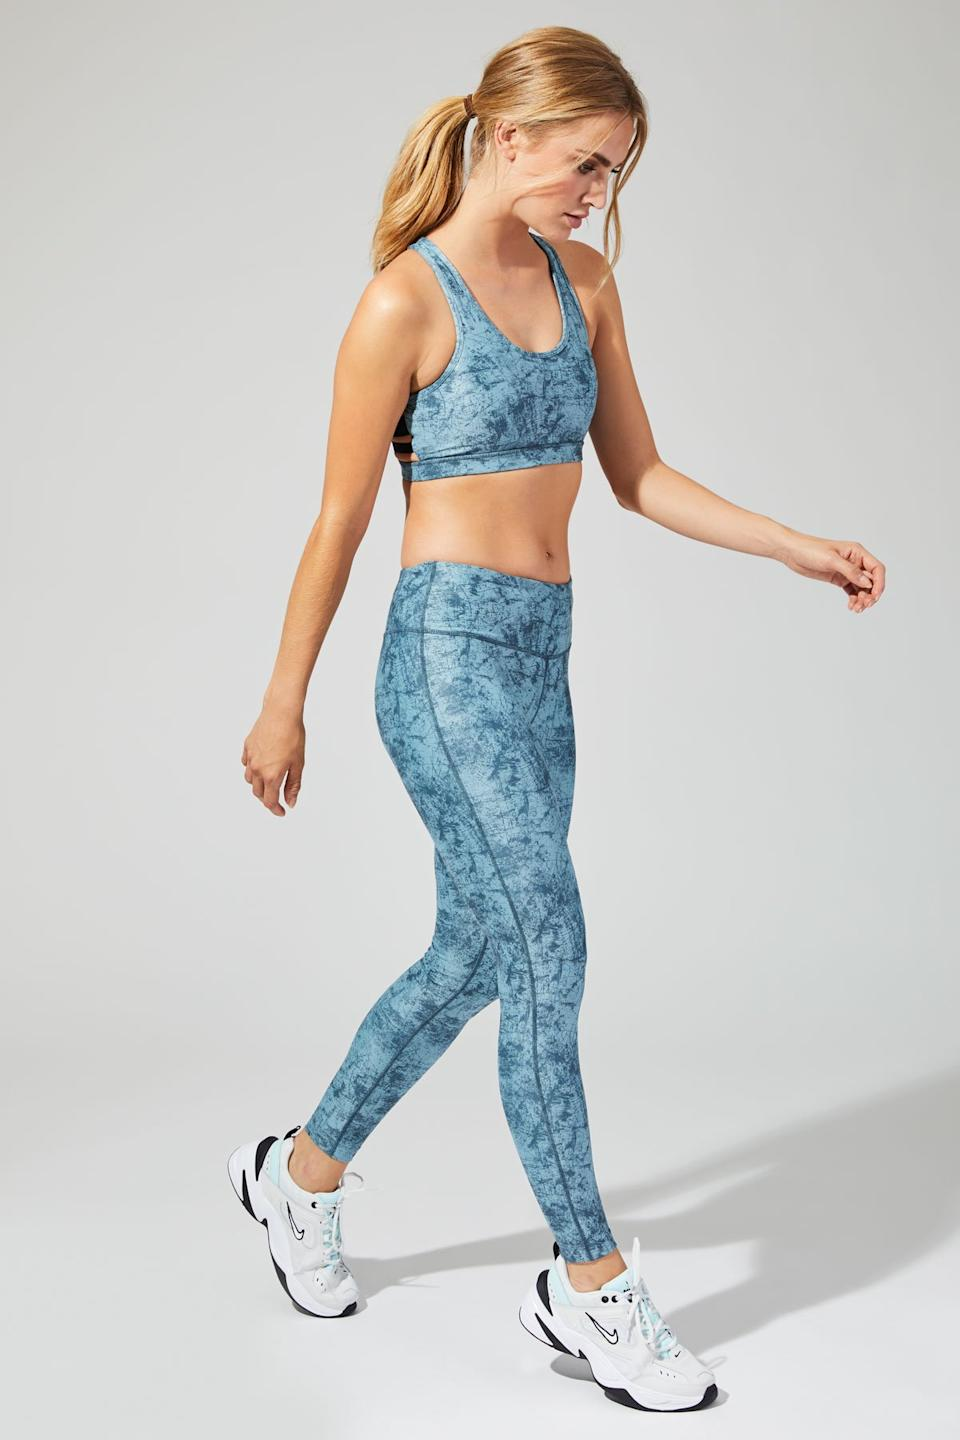 Shoreline Printed 7/8 Leggings - MPG Sport $25 (originally $76)